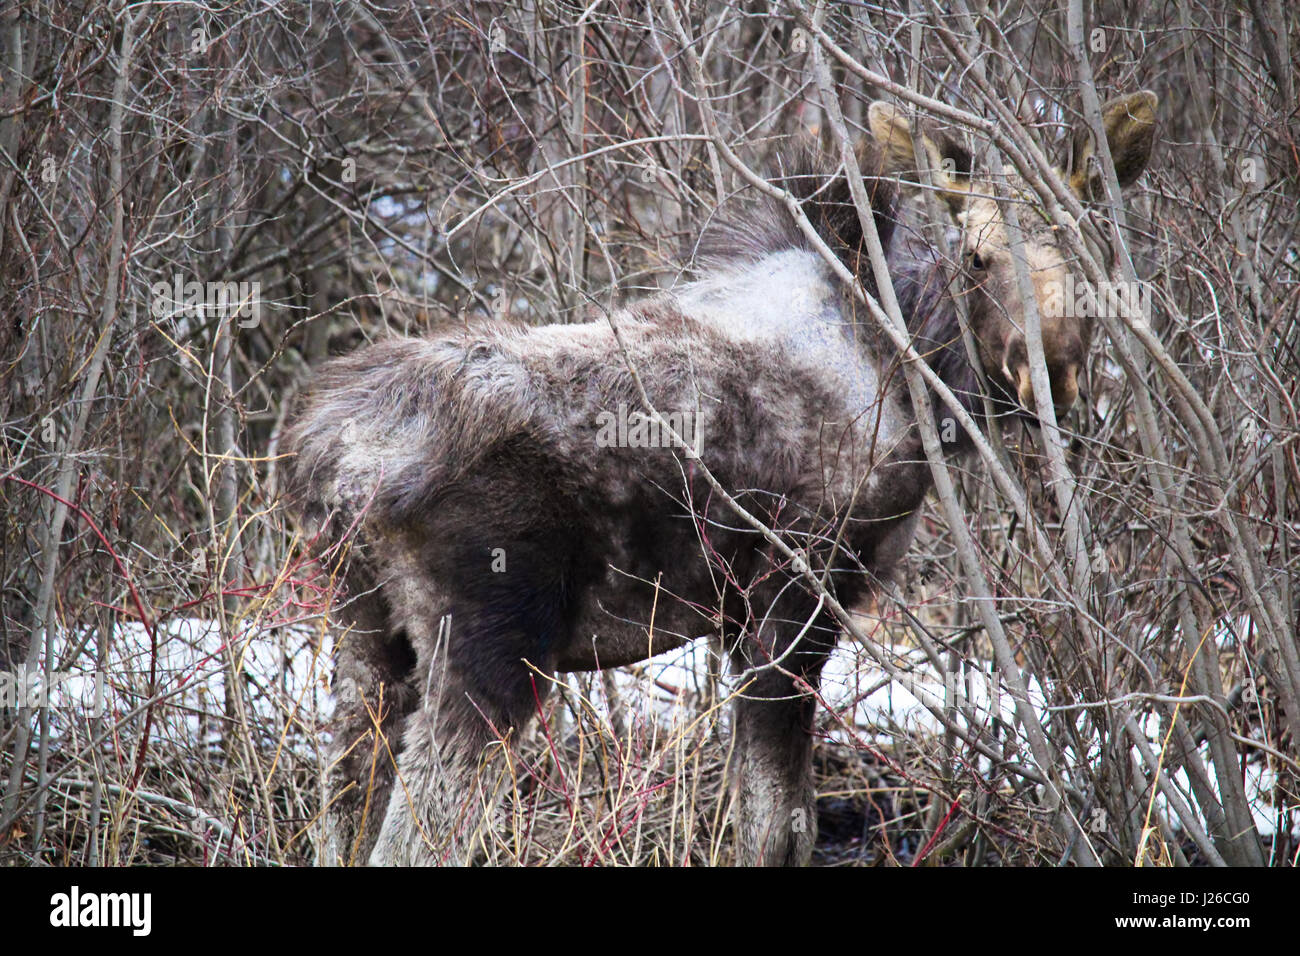 Moose calf with a possible tick infestation. - Stock Image